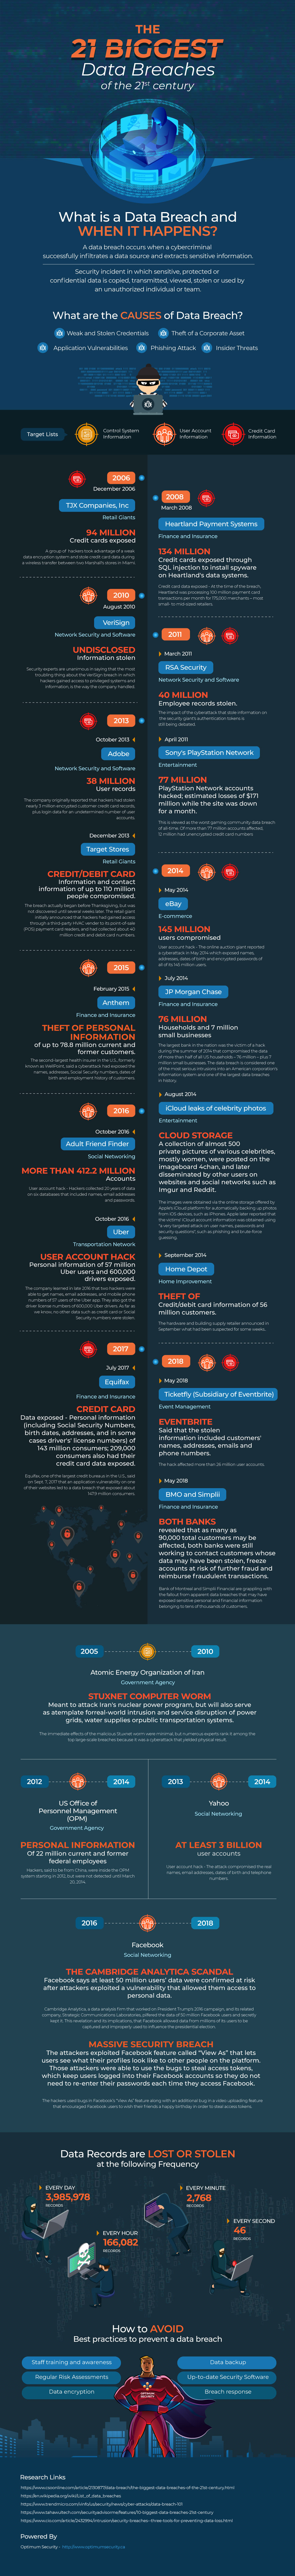 infographic on the 21 biggest data breaches of all time